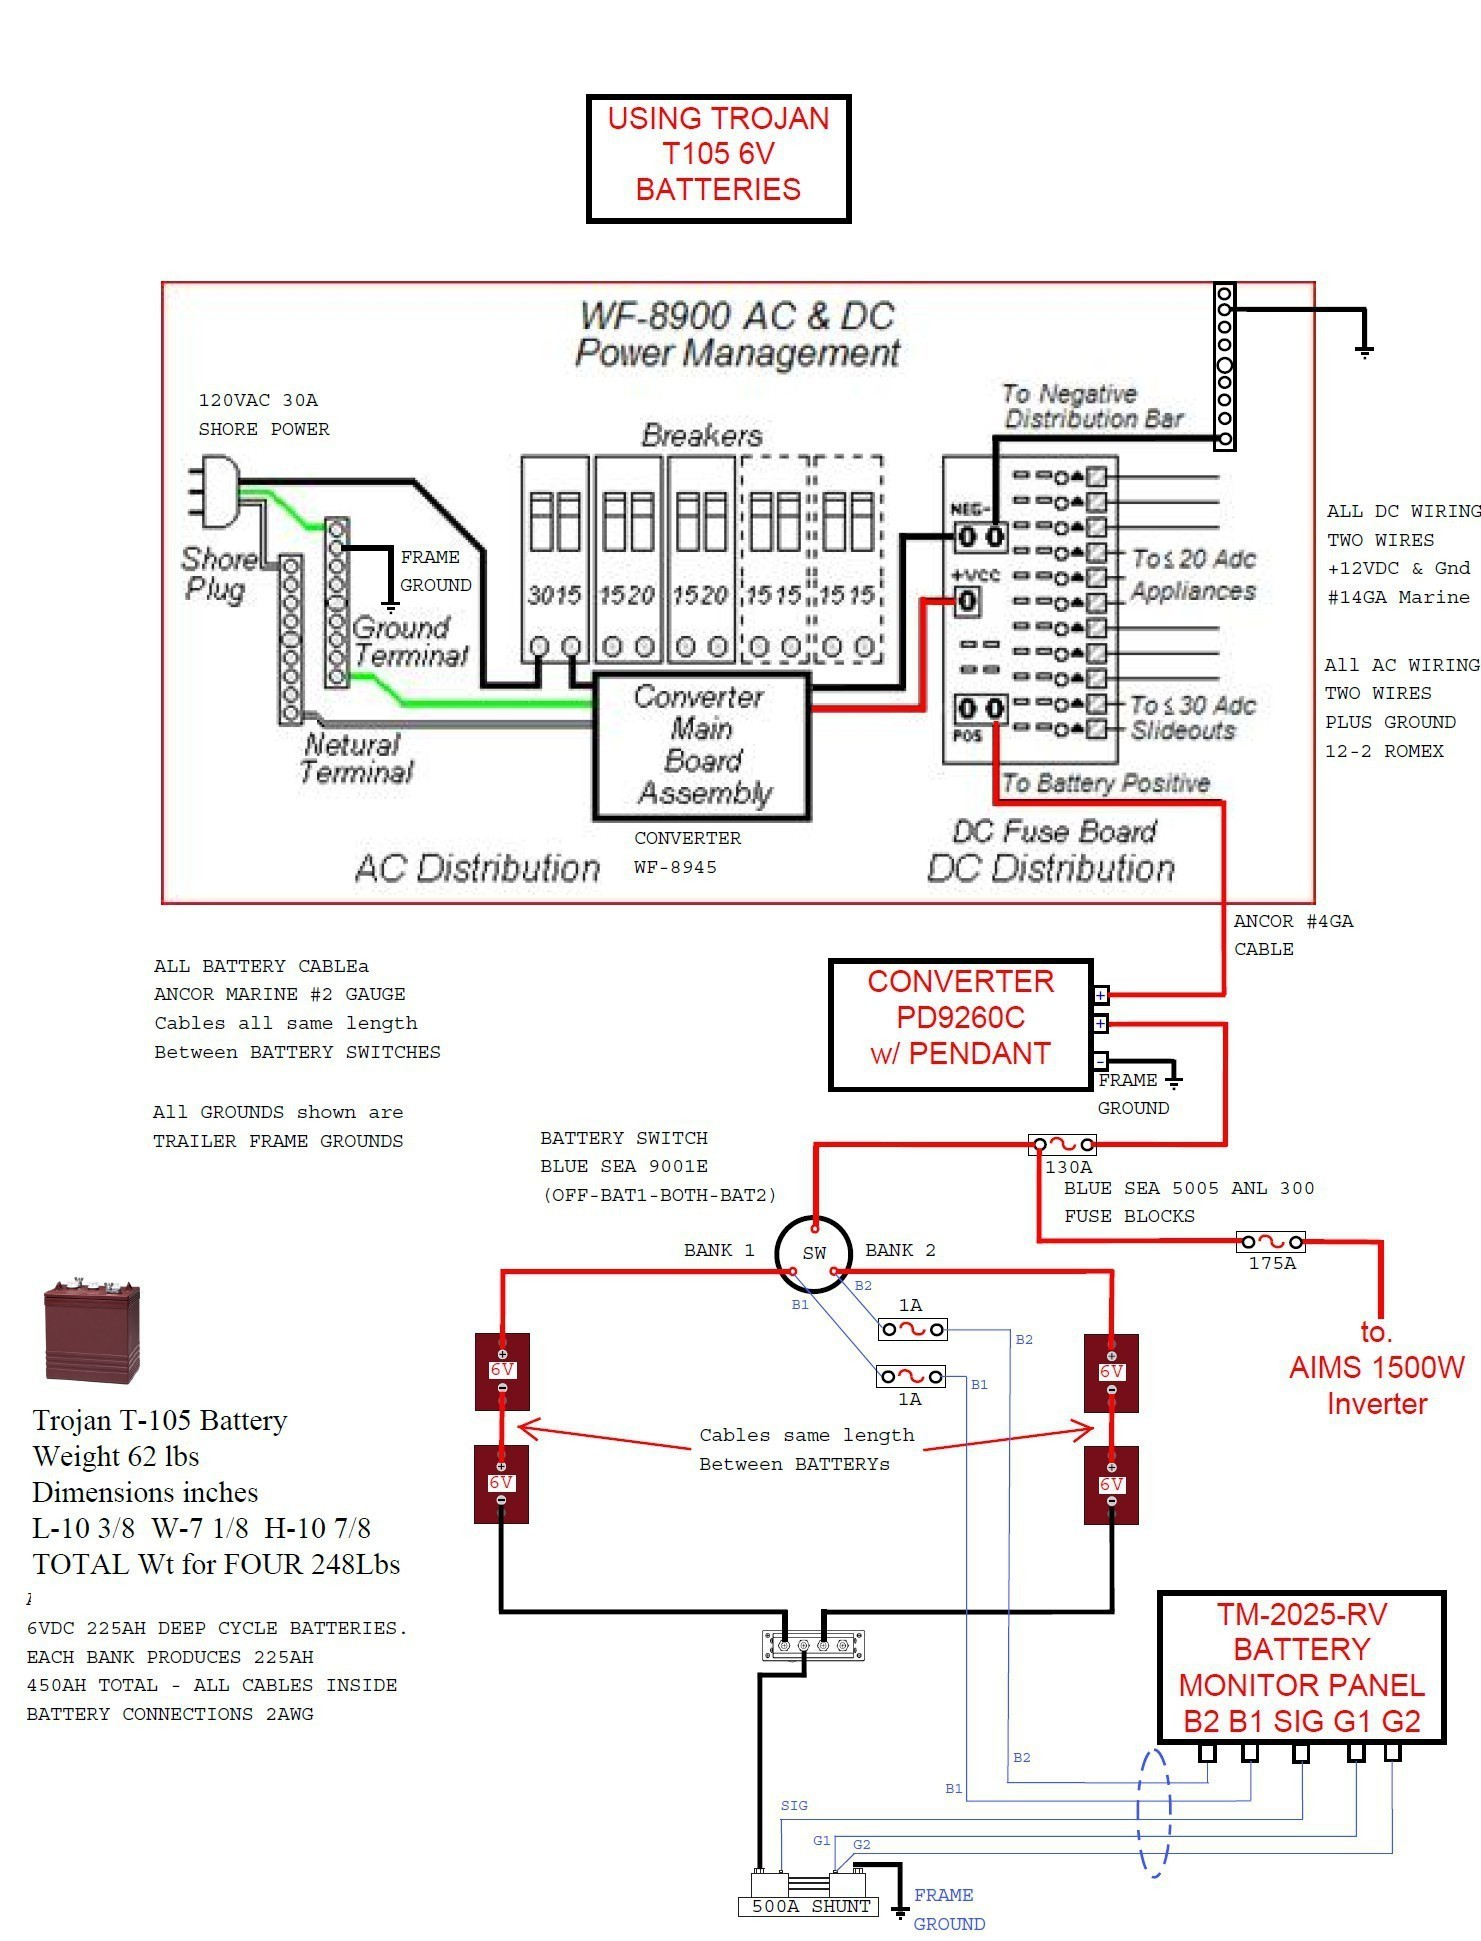 kib micro monitor panel instructions kib rv monitor panel wiring diagram wiring diagram schematic of kib micro monitor panel instructions